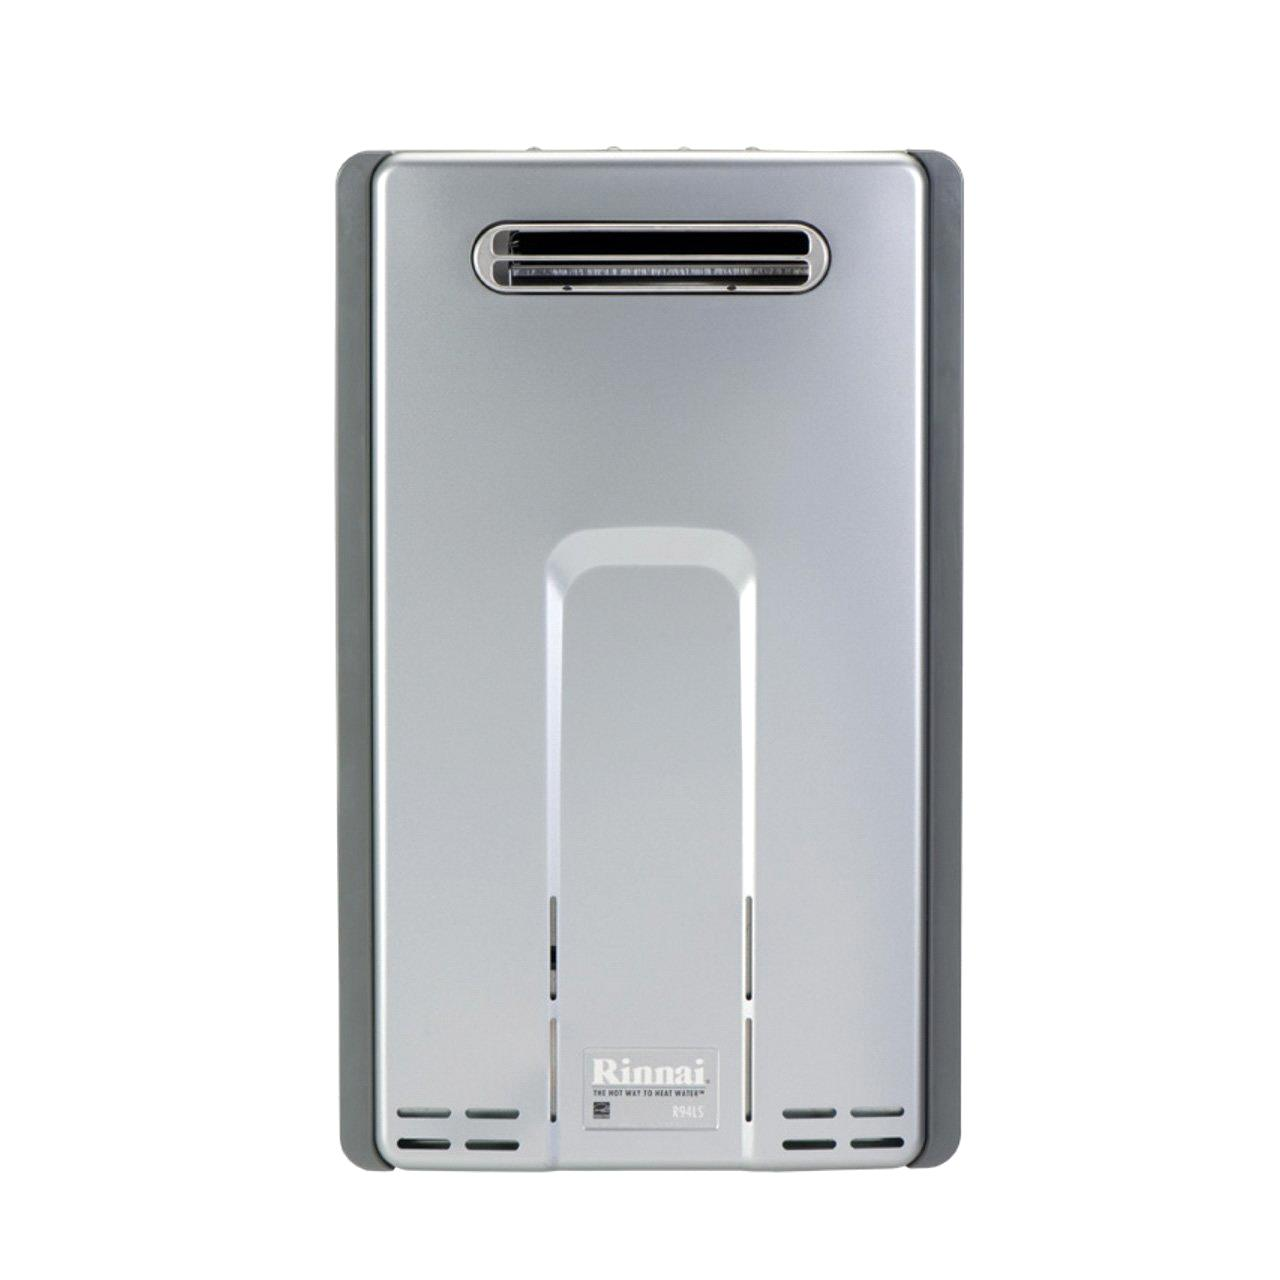 Rinnai Rl94ip Propane Tankless Water Heater Review Of